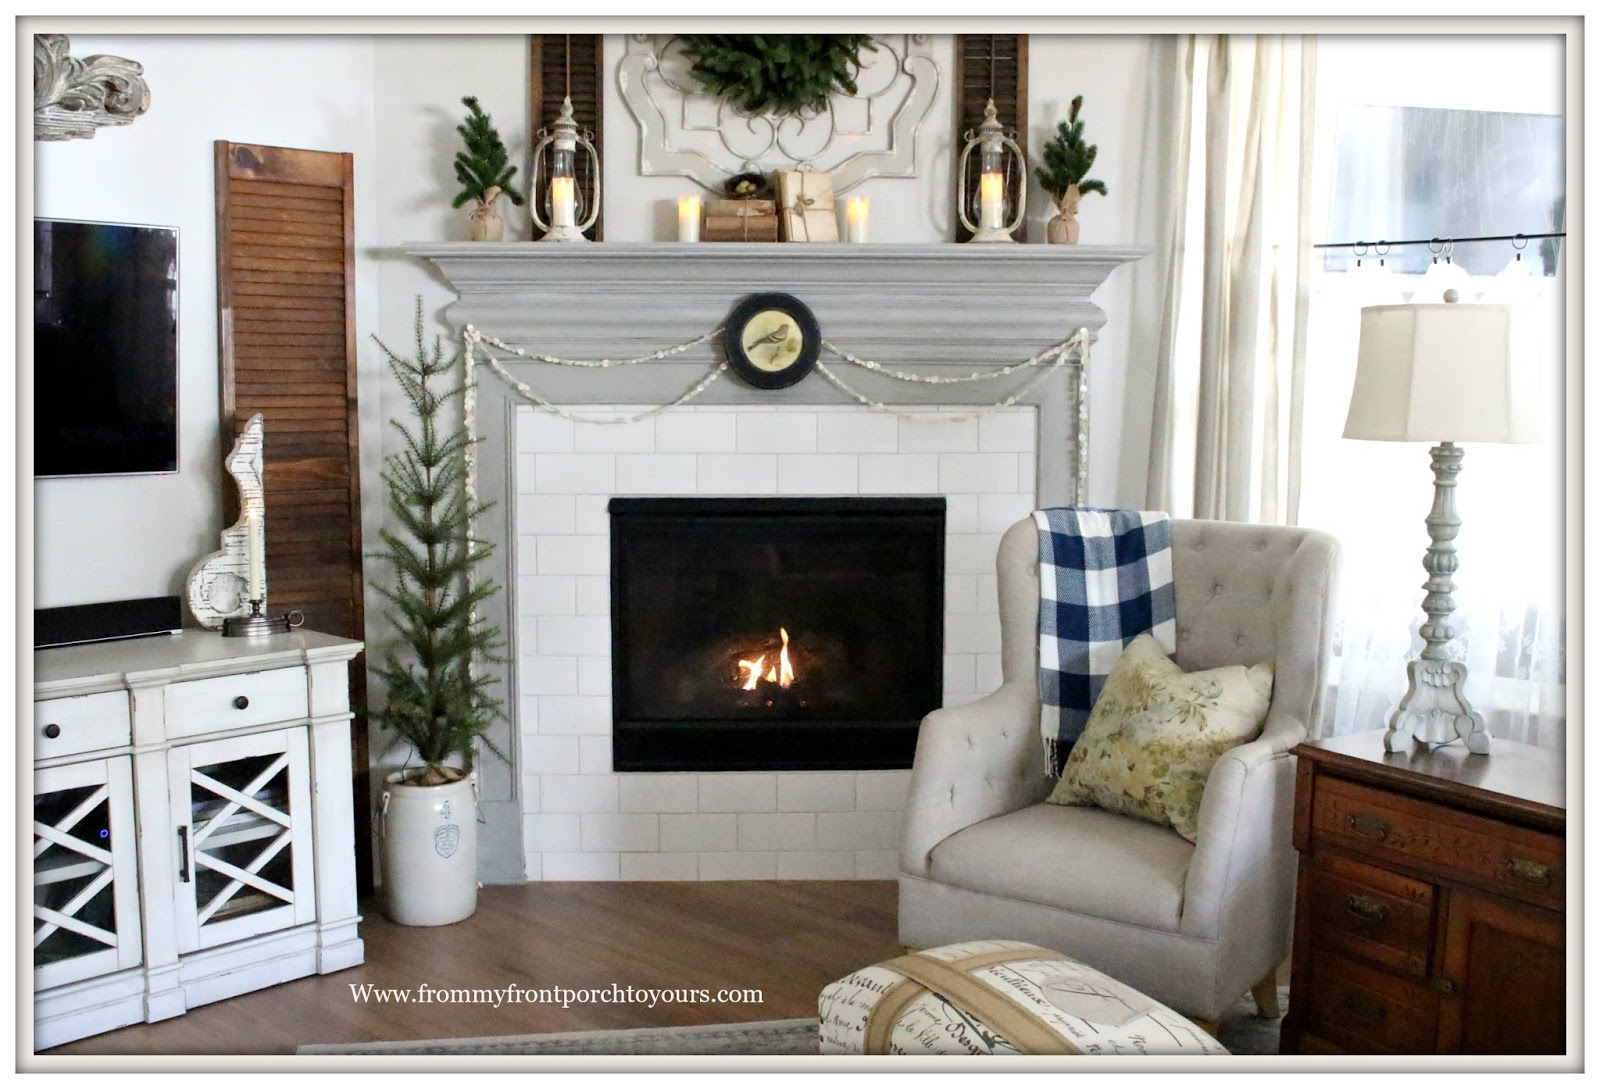 French Country Fireplace From My Front Porch To Yours French Country Farmhouse Winter